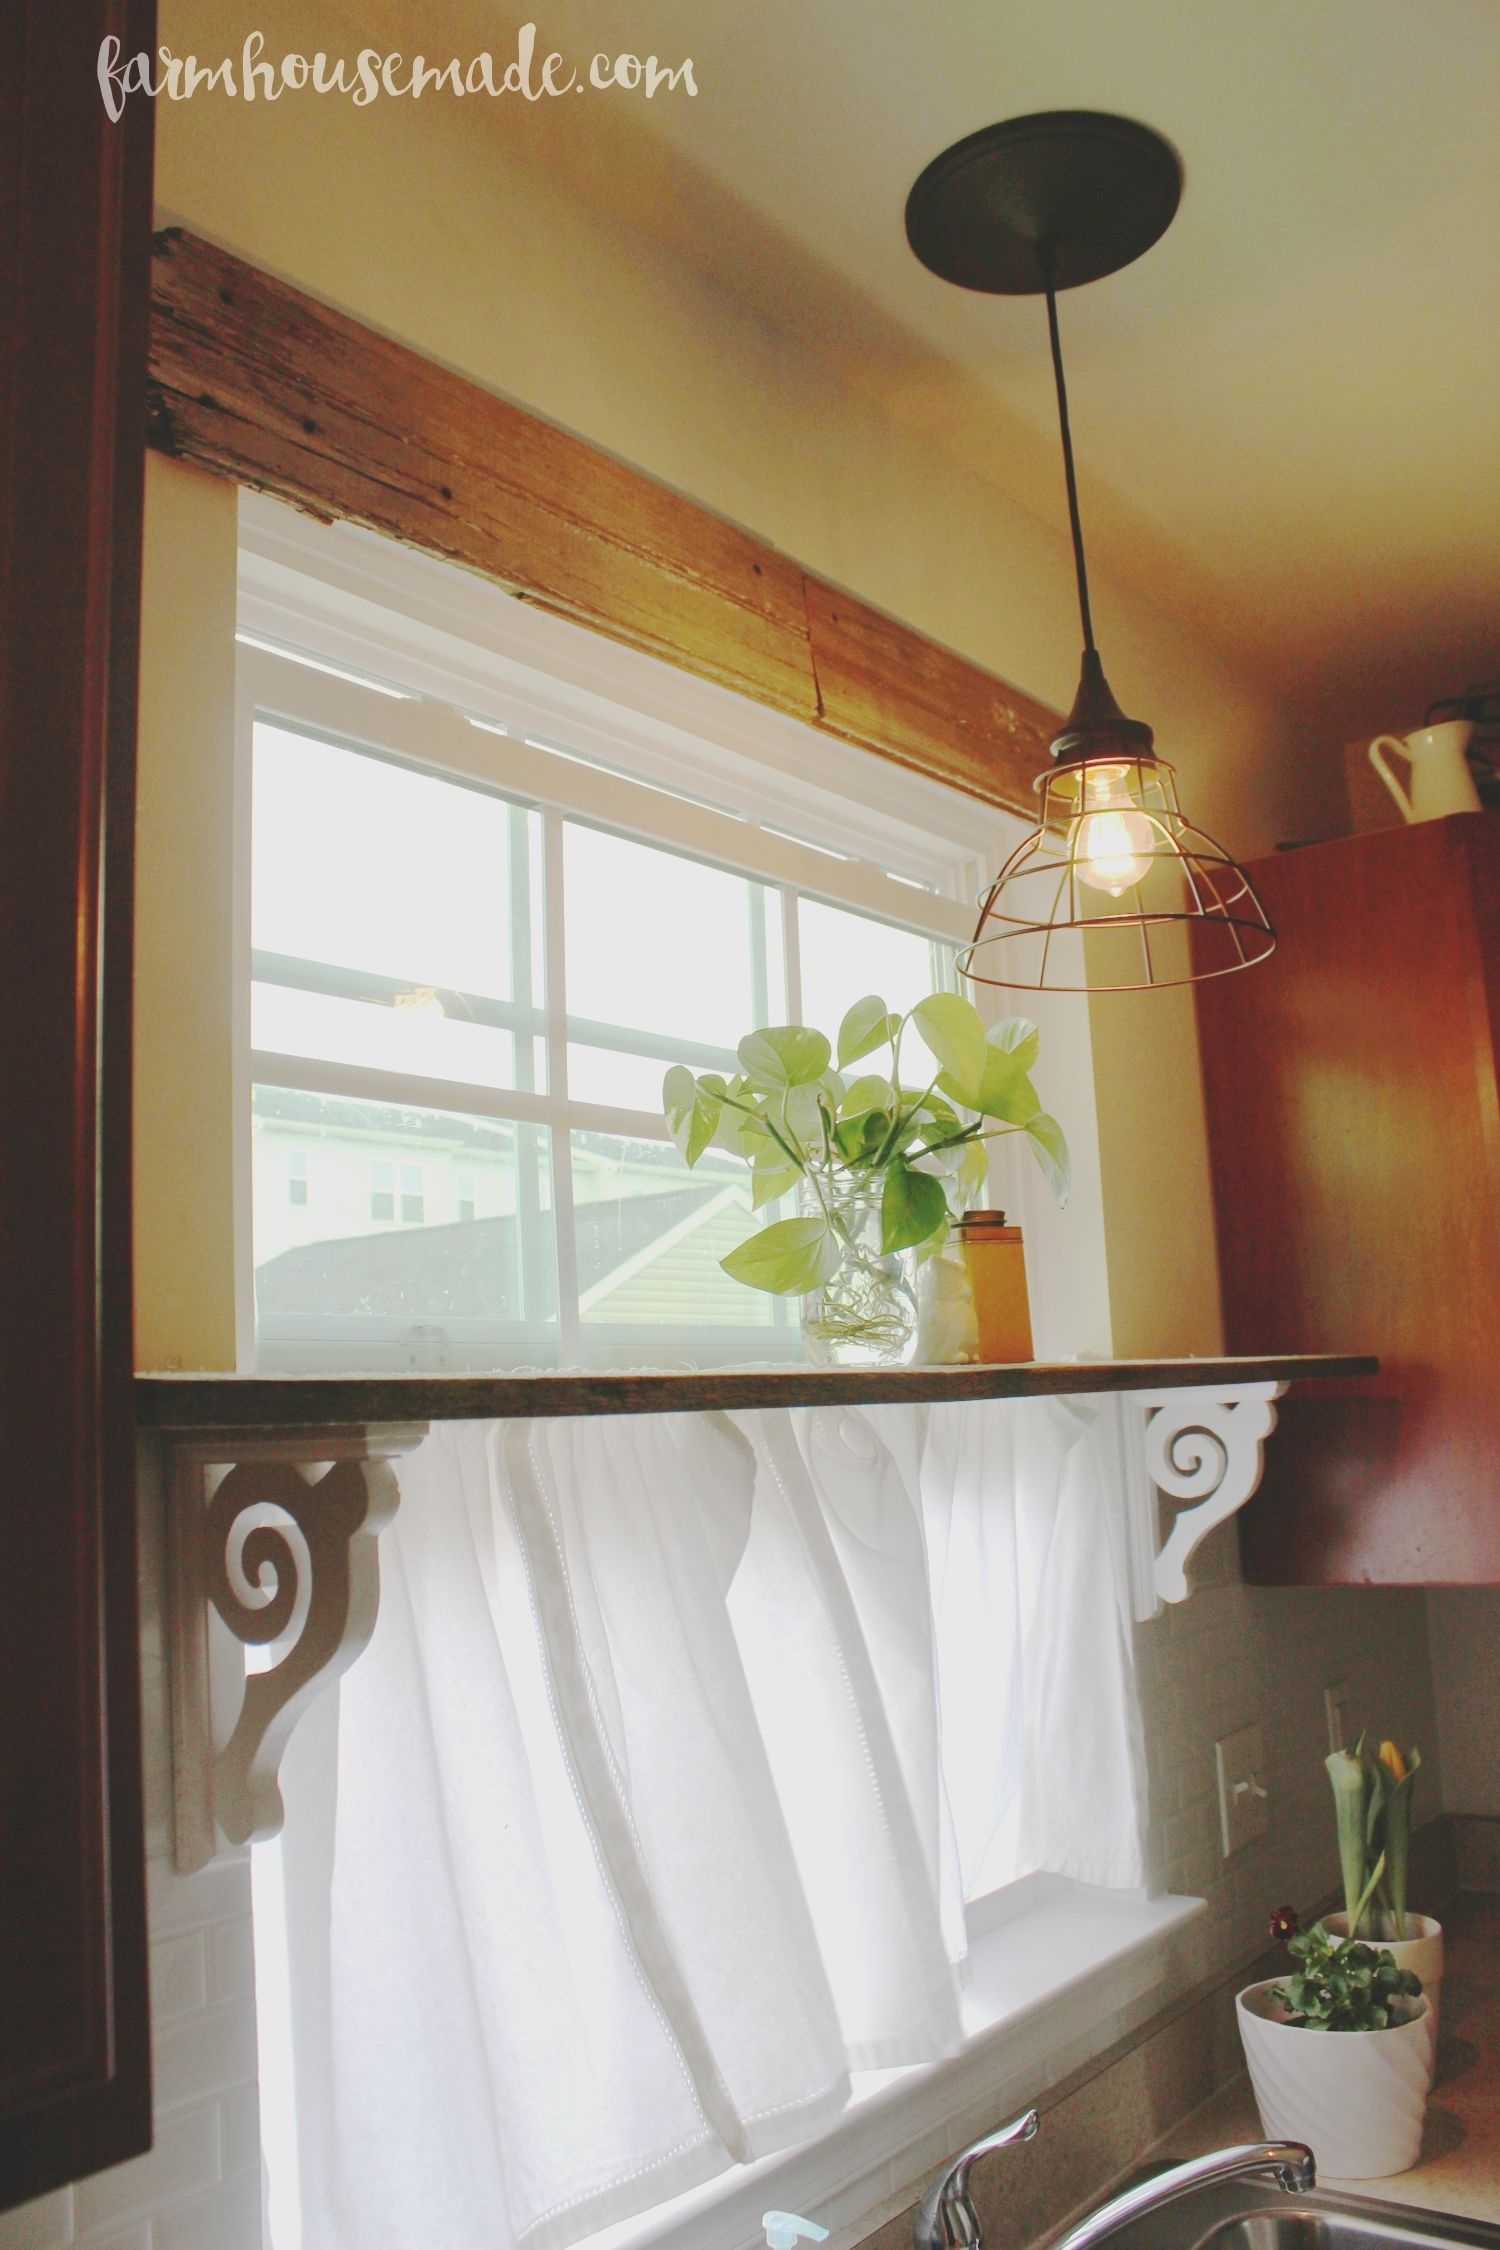 Kitchen window over sink  rustic kitchen transformation progress  rustic kitchen you ve and